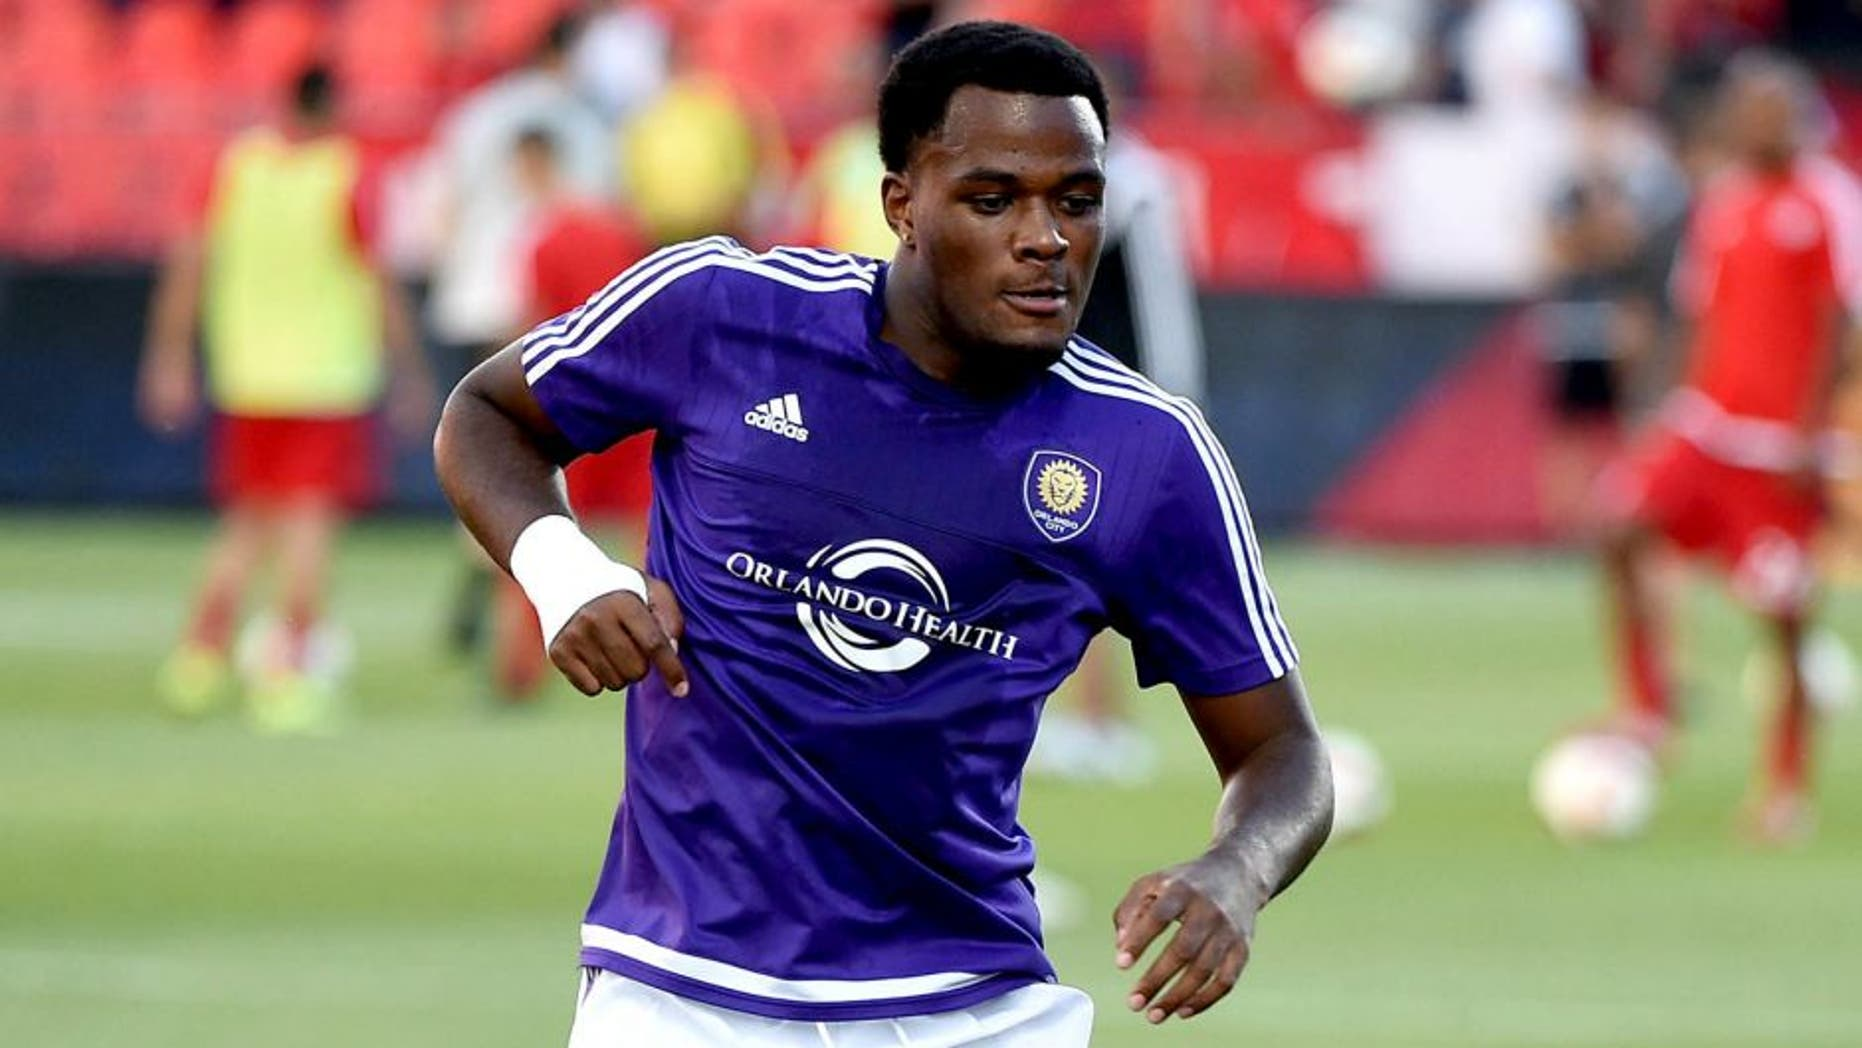 Aug 5, 2015; Toronto, Ontario, CAN; Orlando City forward Cyle Larin (21) passes the ball during pre-game warmups prior to playing Toronto FC at BMO Field. Mandatory Credit: Dan Hamilton-USA TODAY Sports